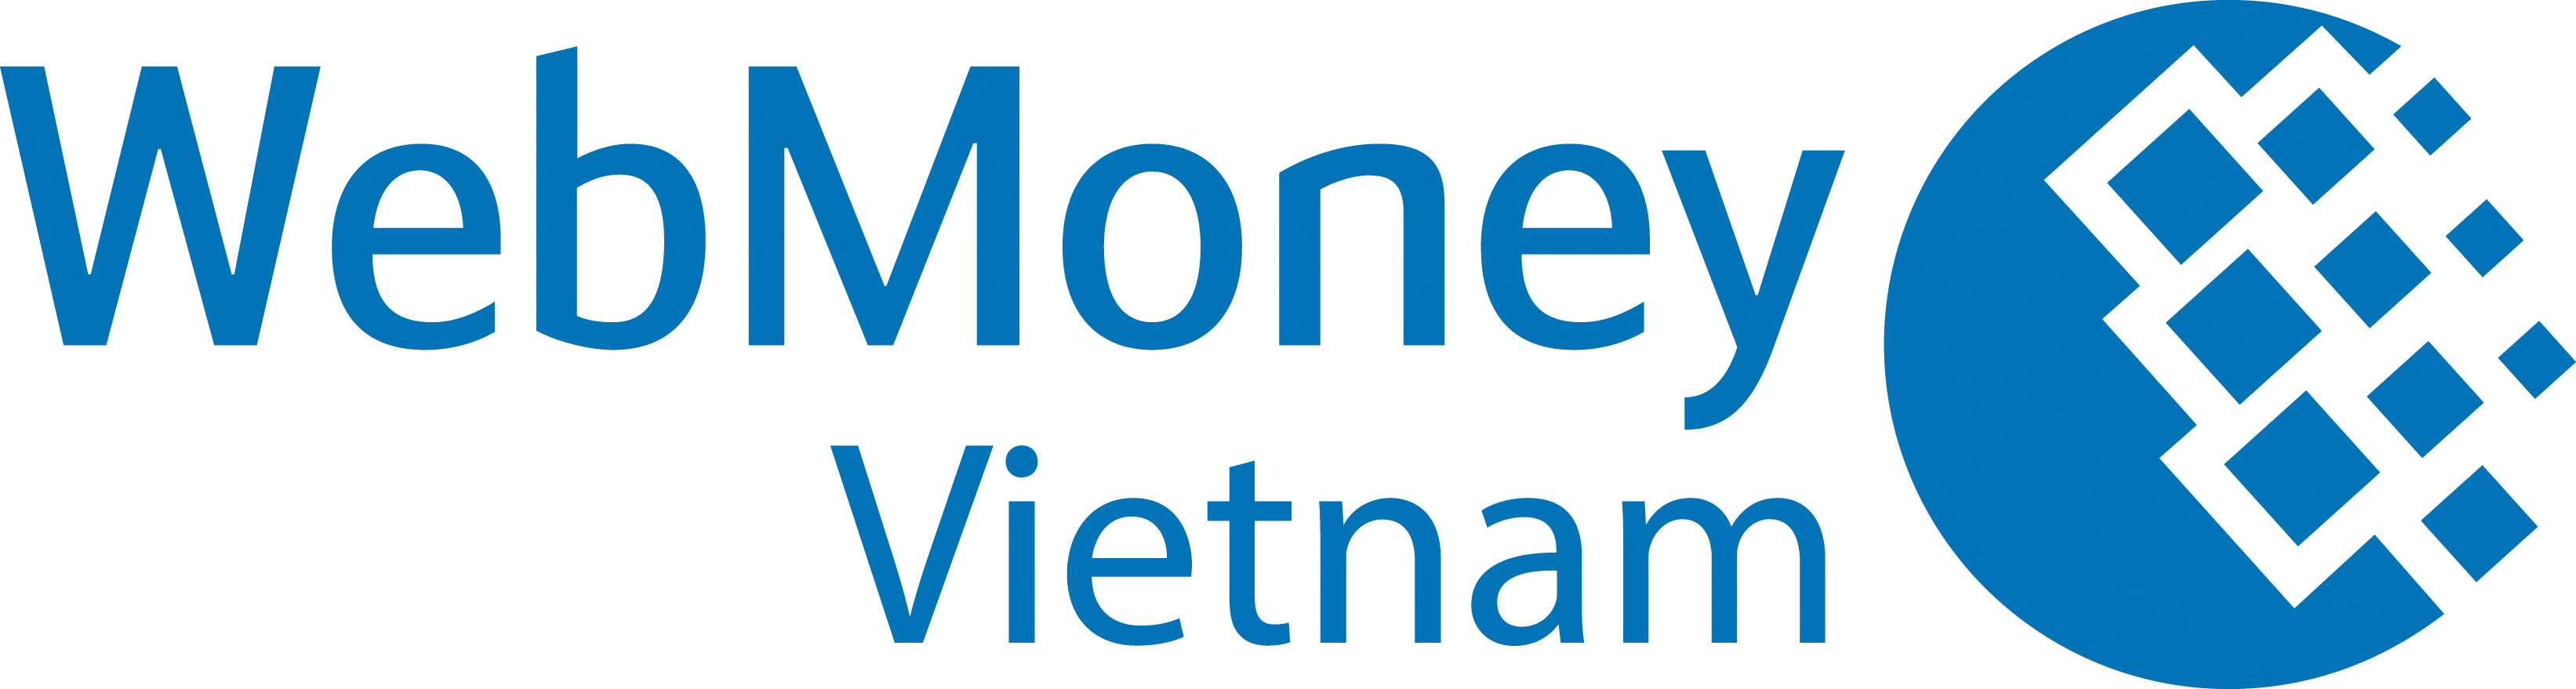 cong thanh toan web money